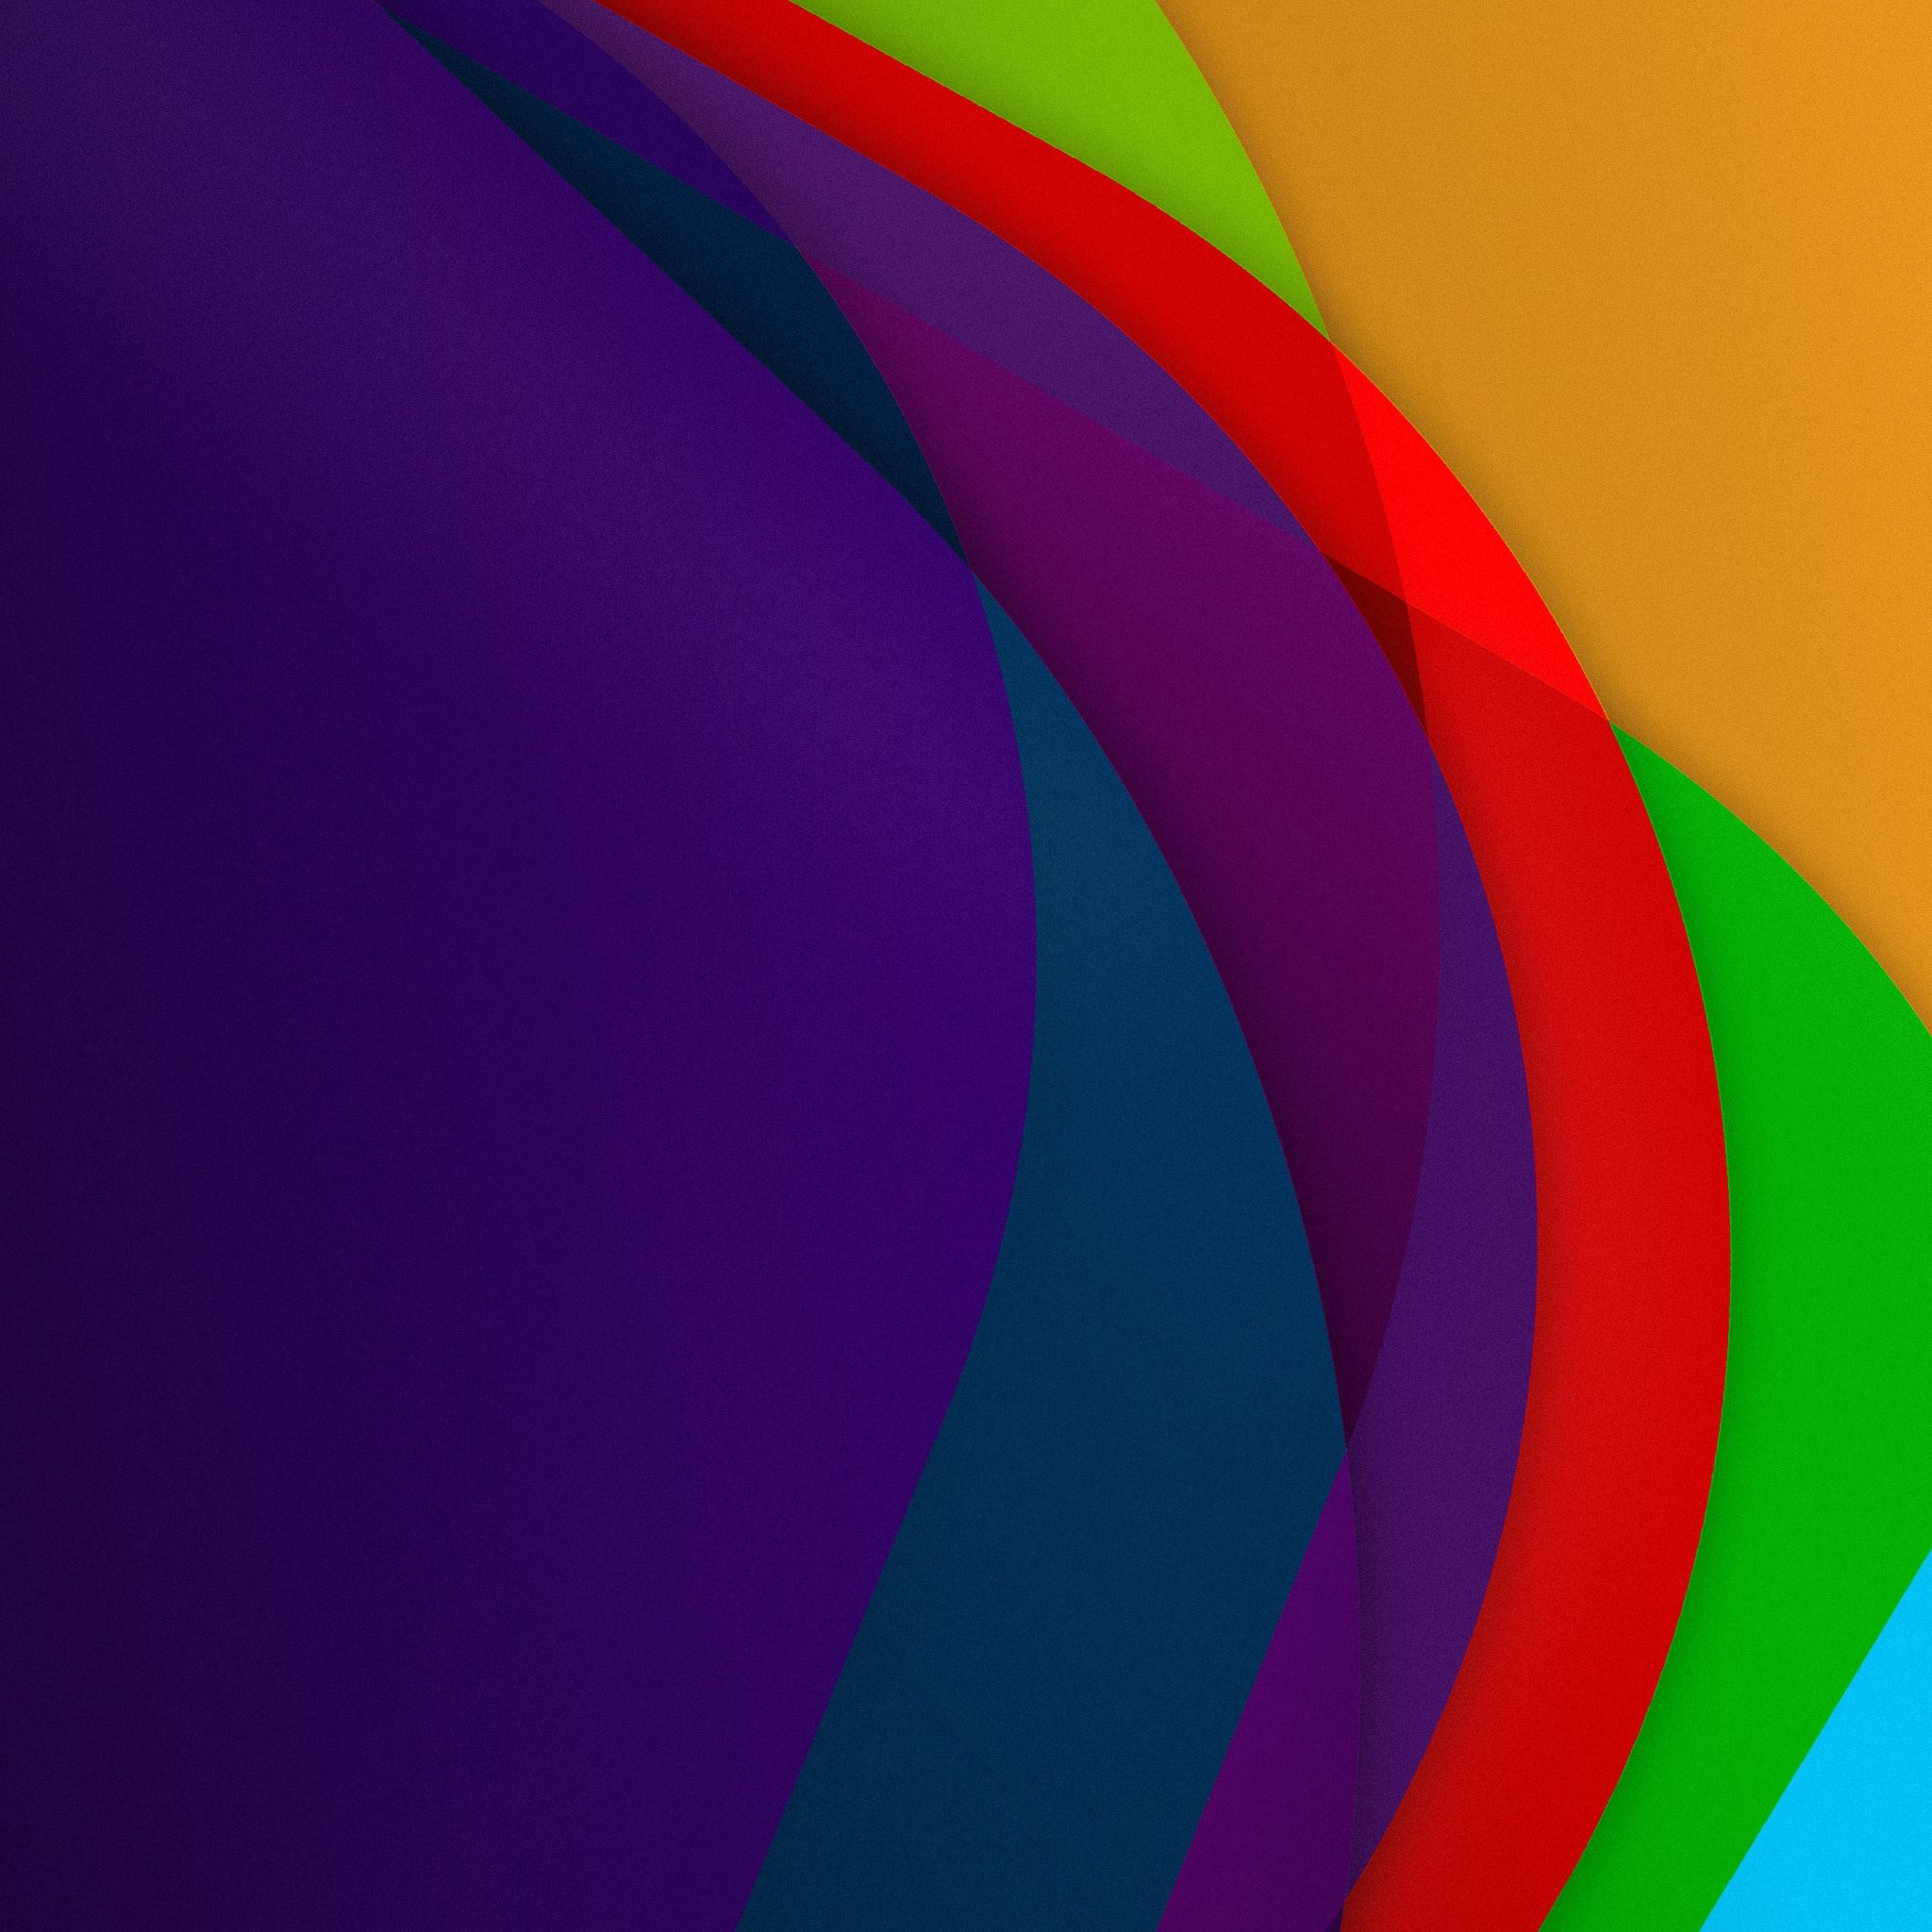 Ios 7 Colorful Lines Background Ipad Air Wallpapers Free